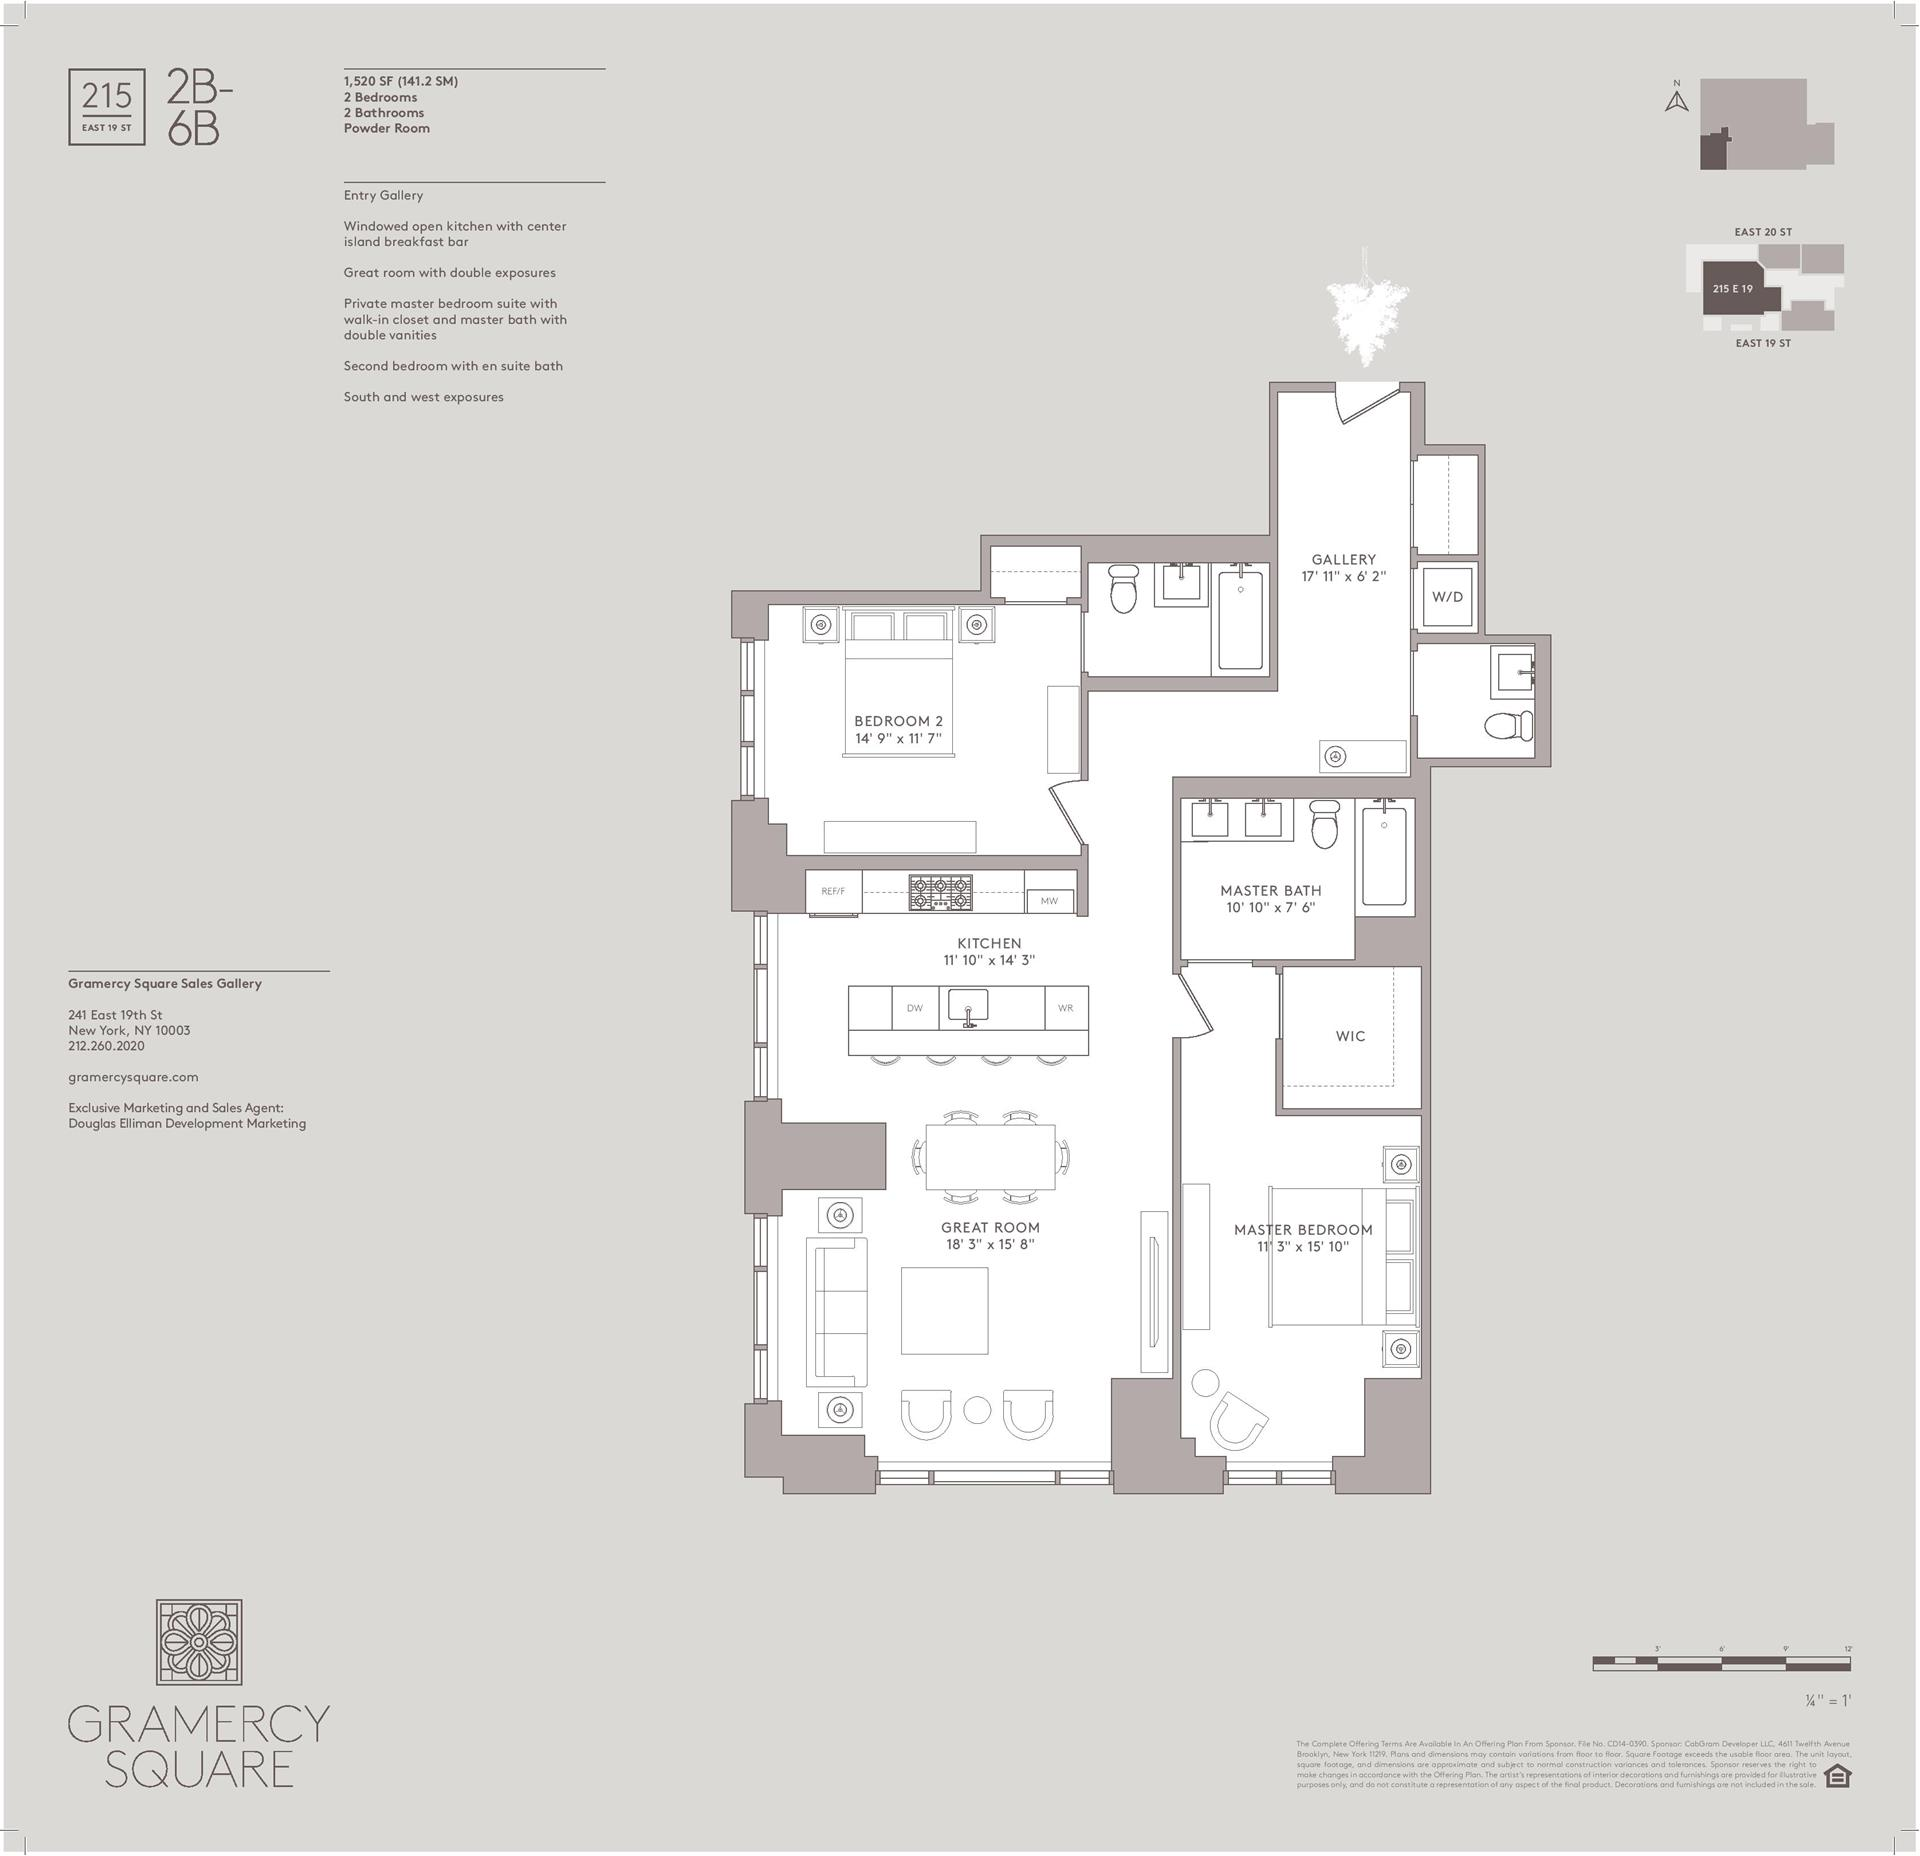 Floor plan of Gramercy Square, 215 East 19th St, 5B - Gramercy - Union Square, New York